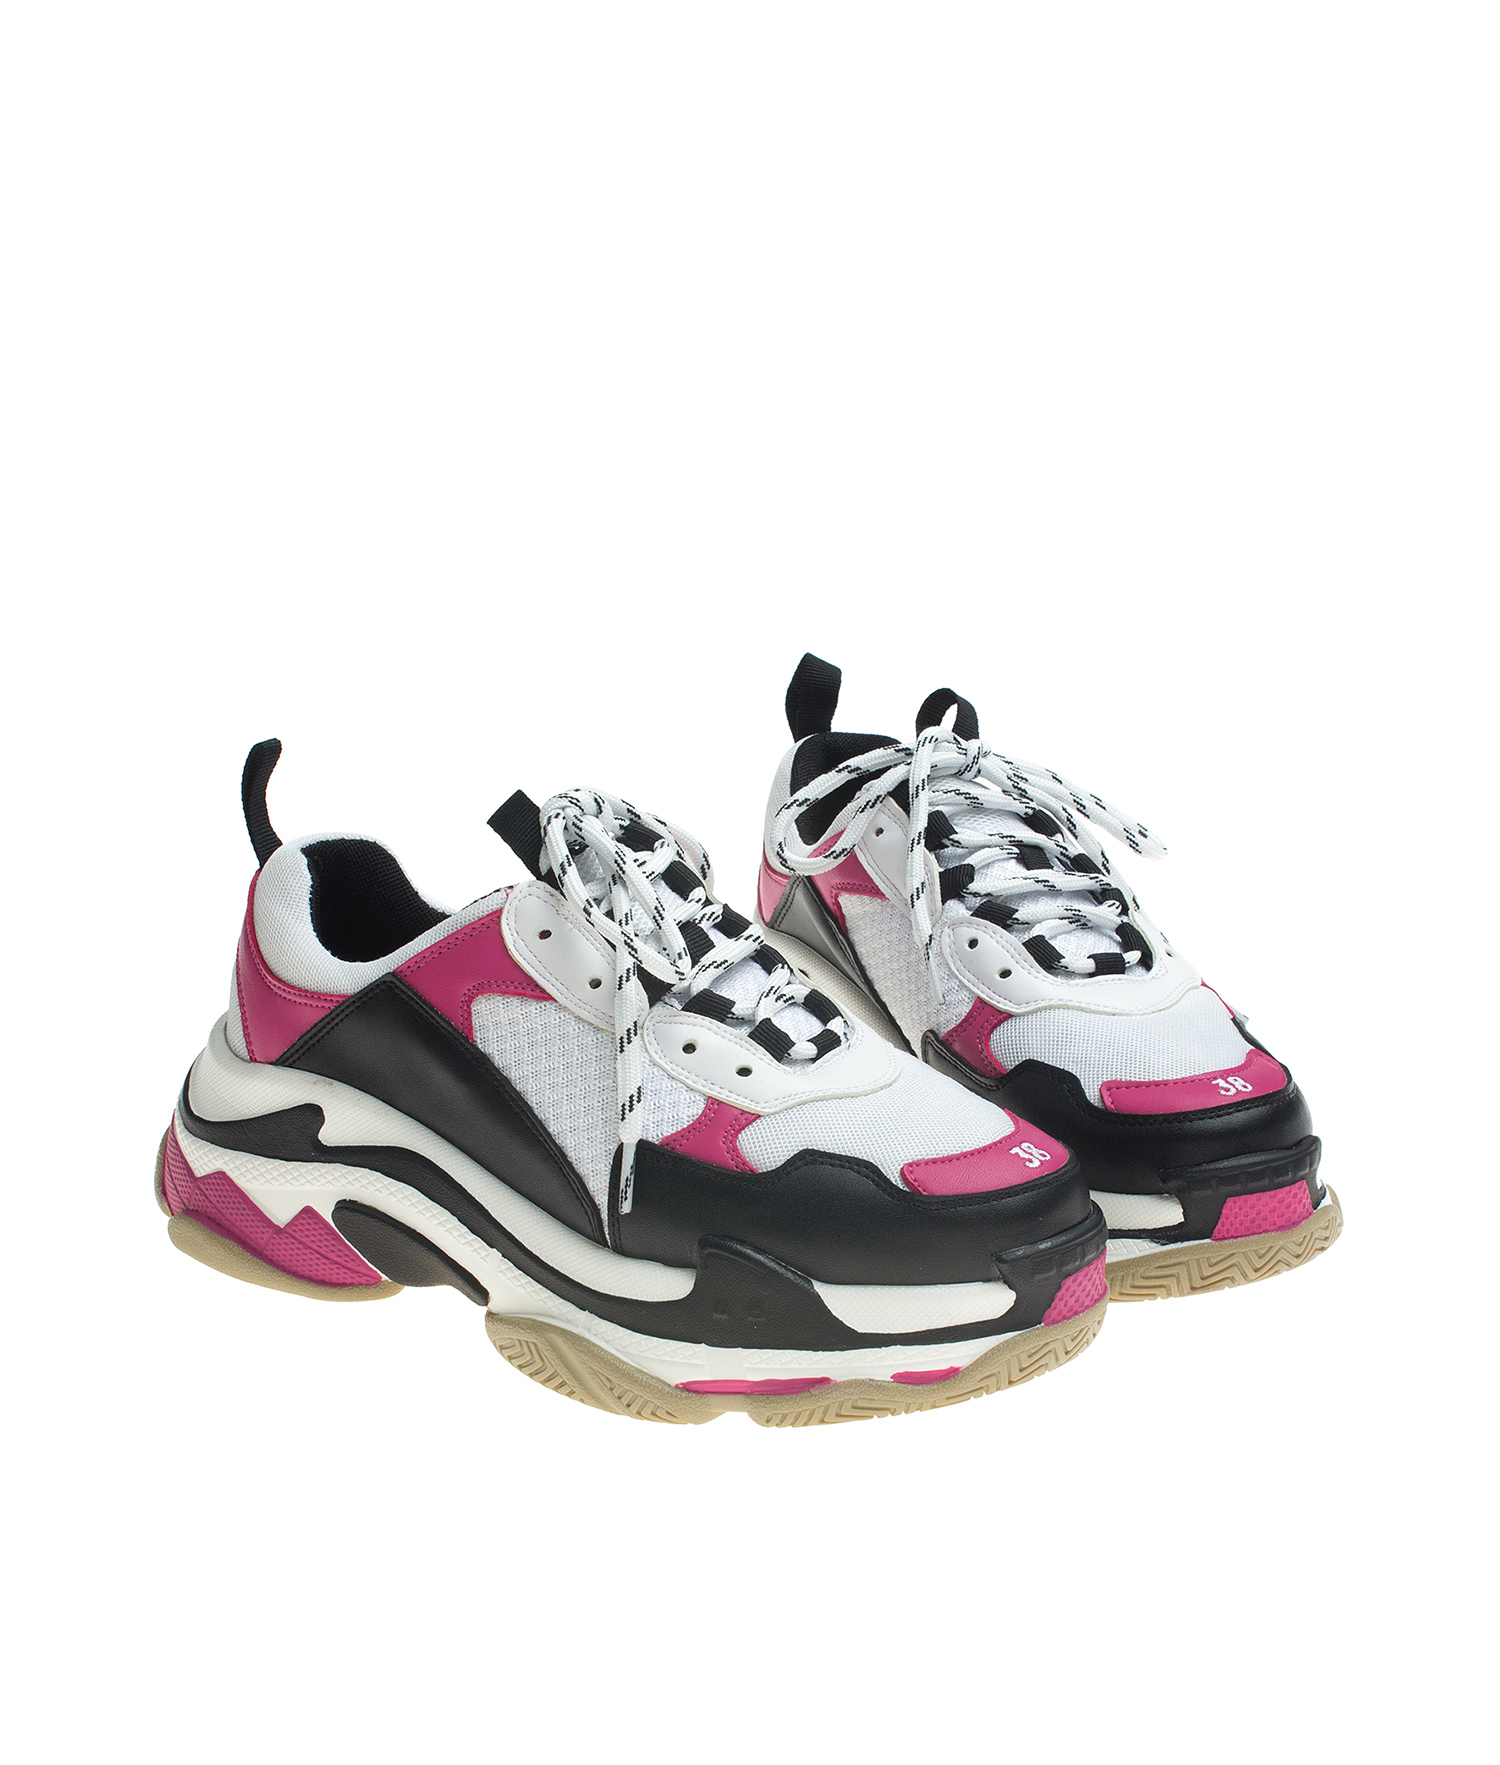 Low Top Chunky Sole Fashion Sneakers Annakastleshoes Com